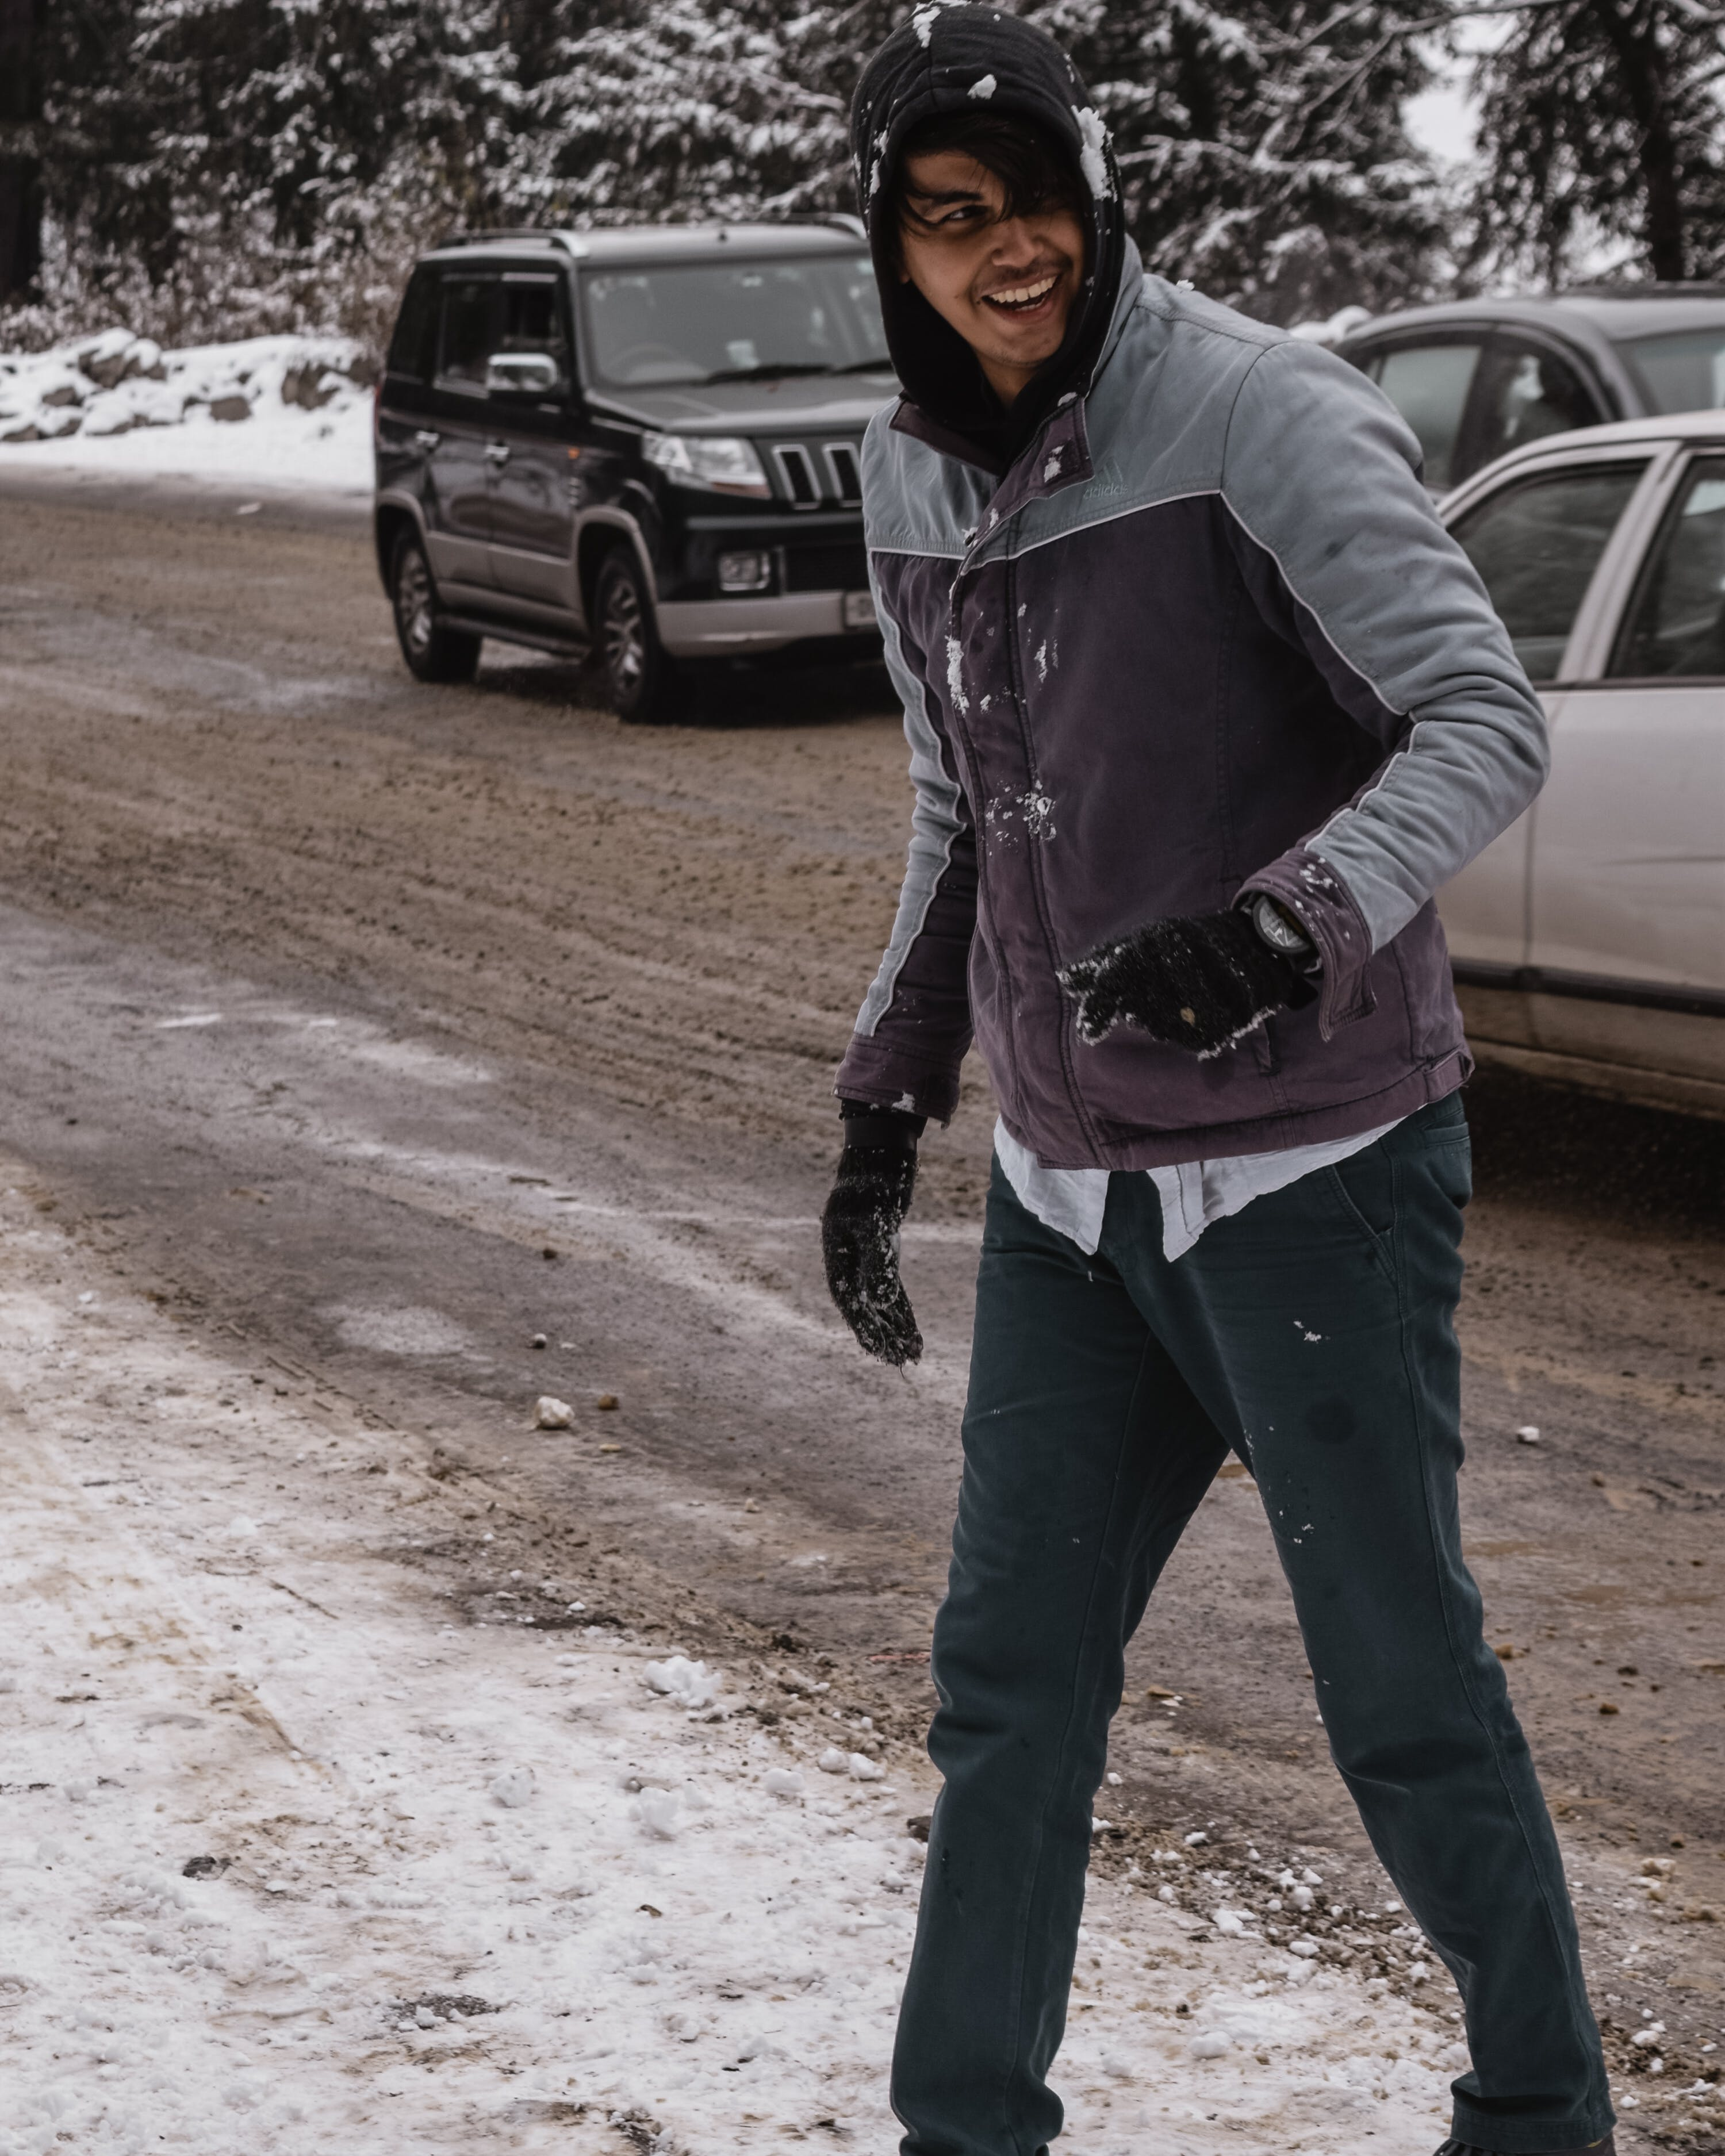 Man in Winter Jacket Laughing Near Cars